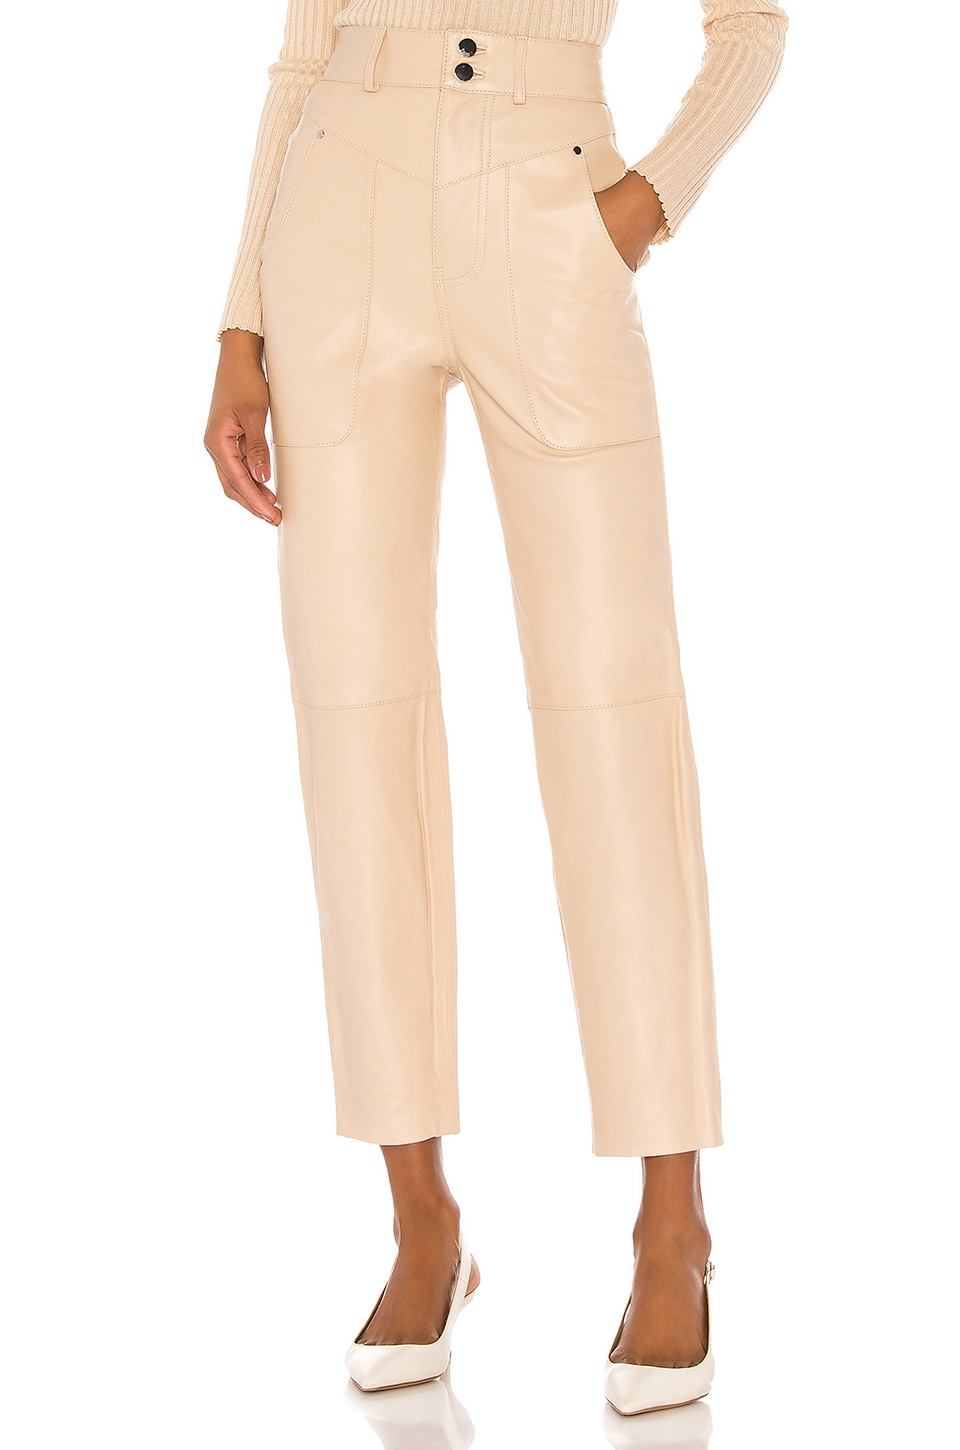 Song of Style Seana Leather Pant in Khaki